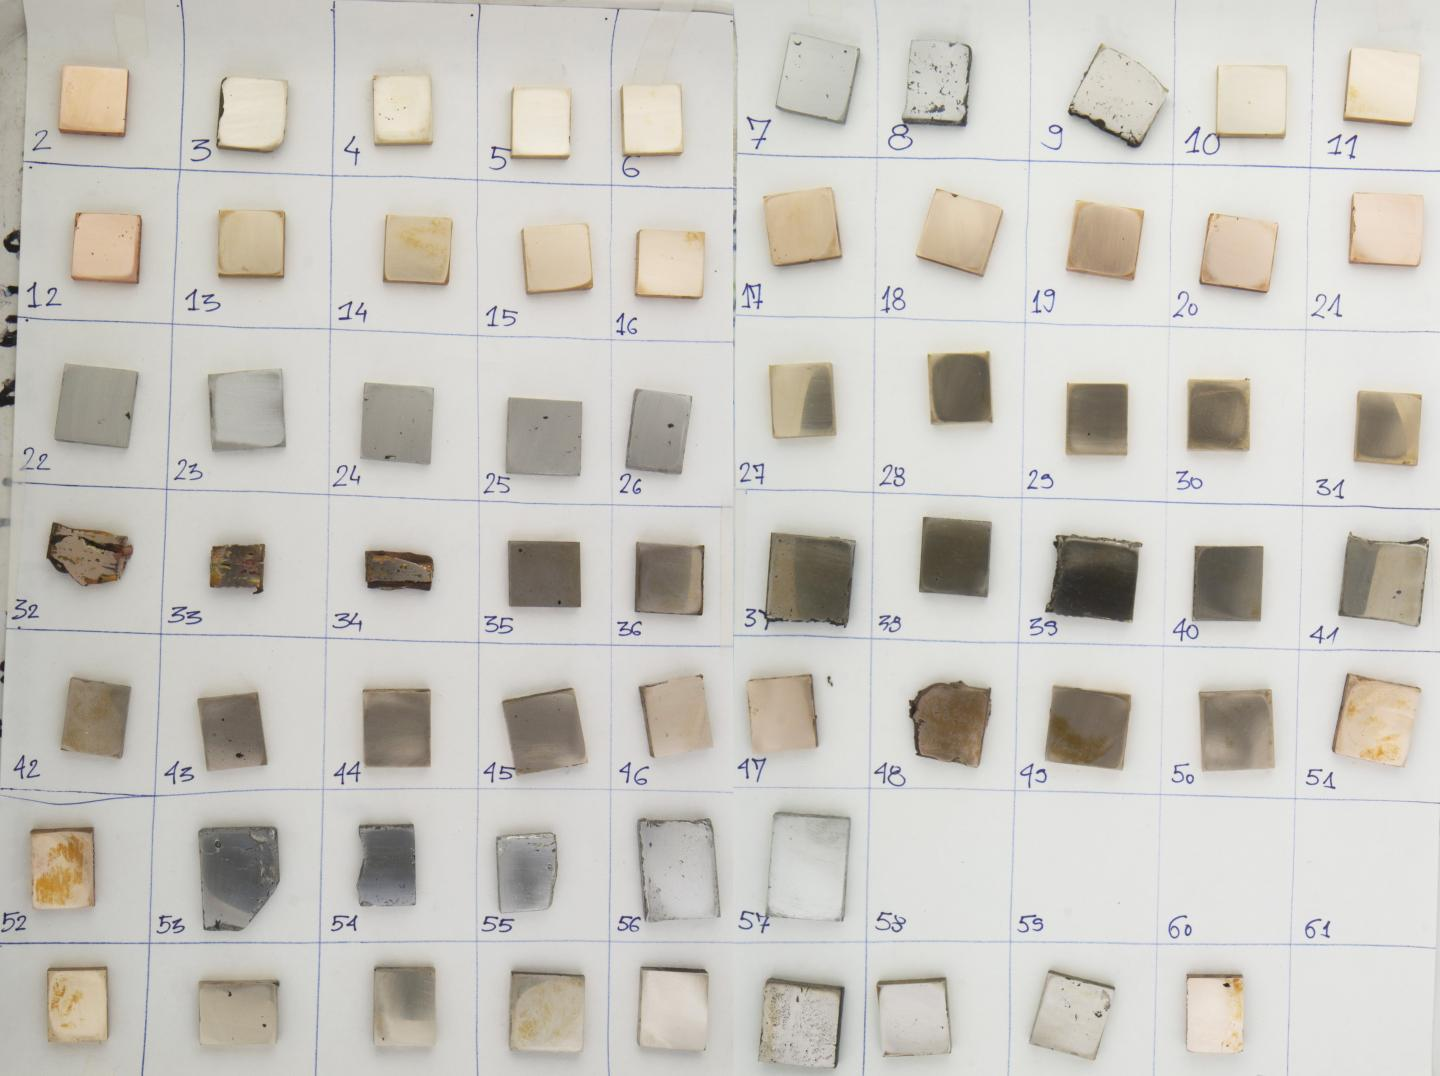 64 Metal Samples of using Variable Copper-tin-arsenic Compositions Created to use in the Study